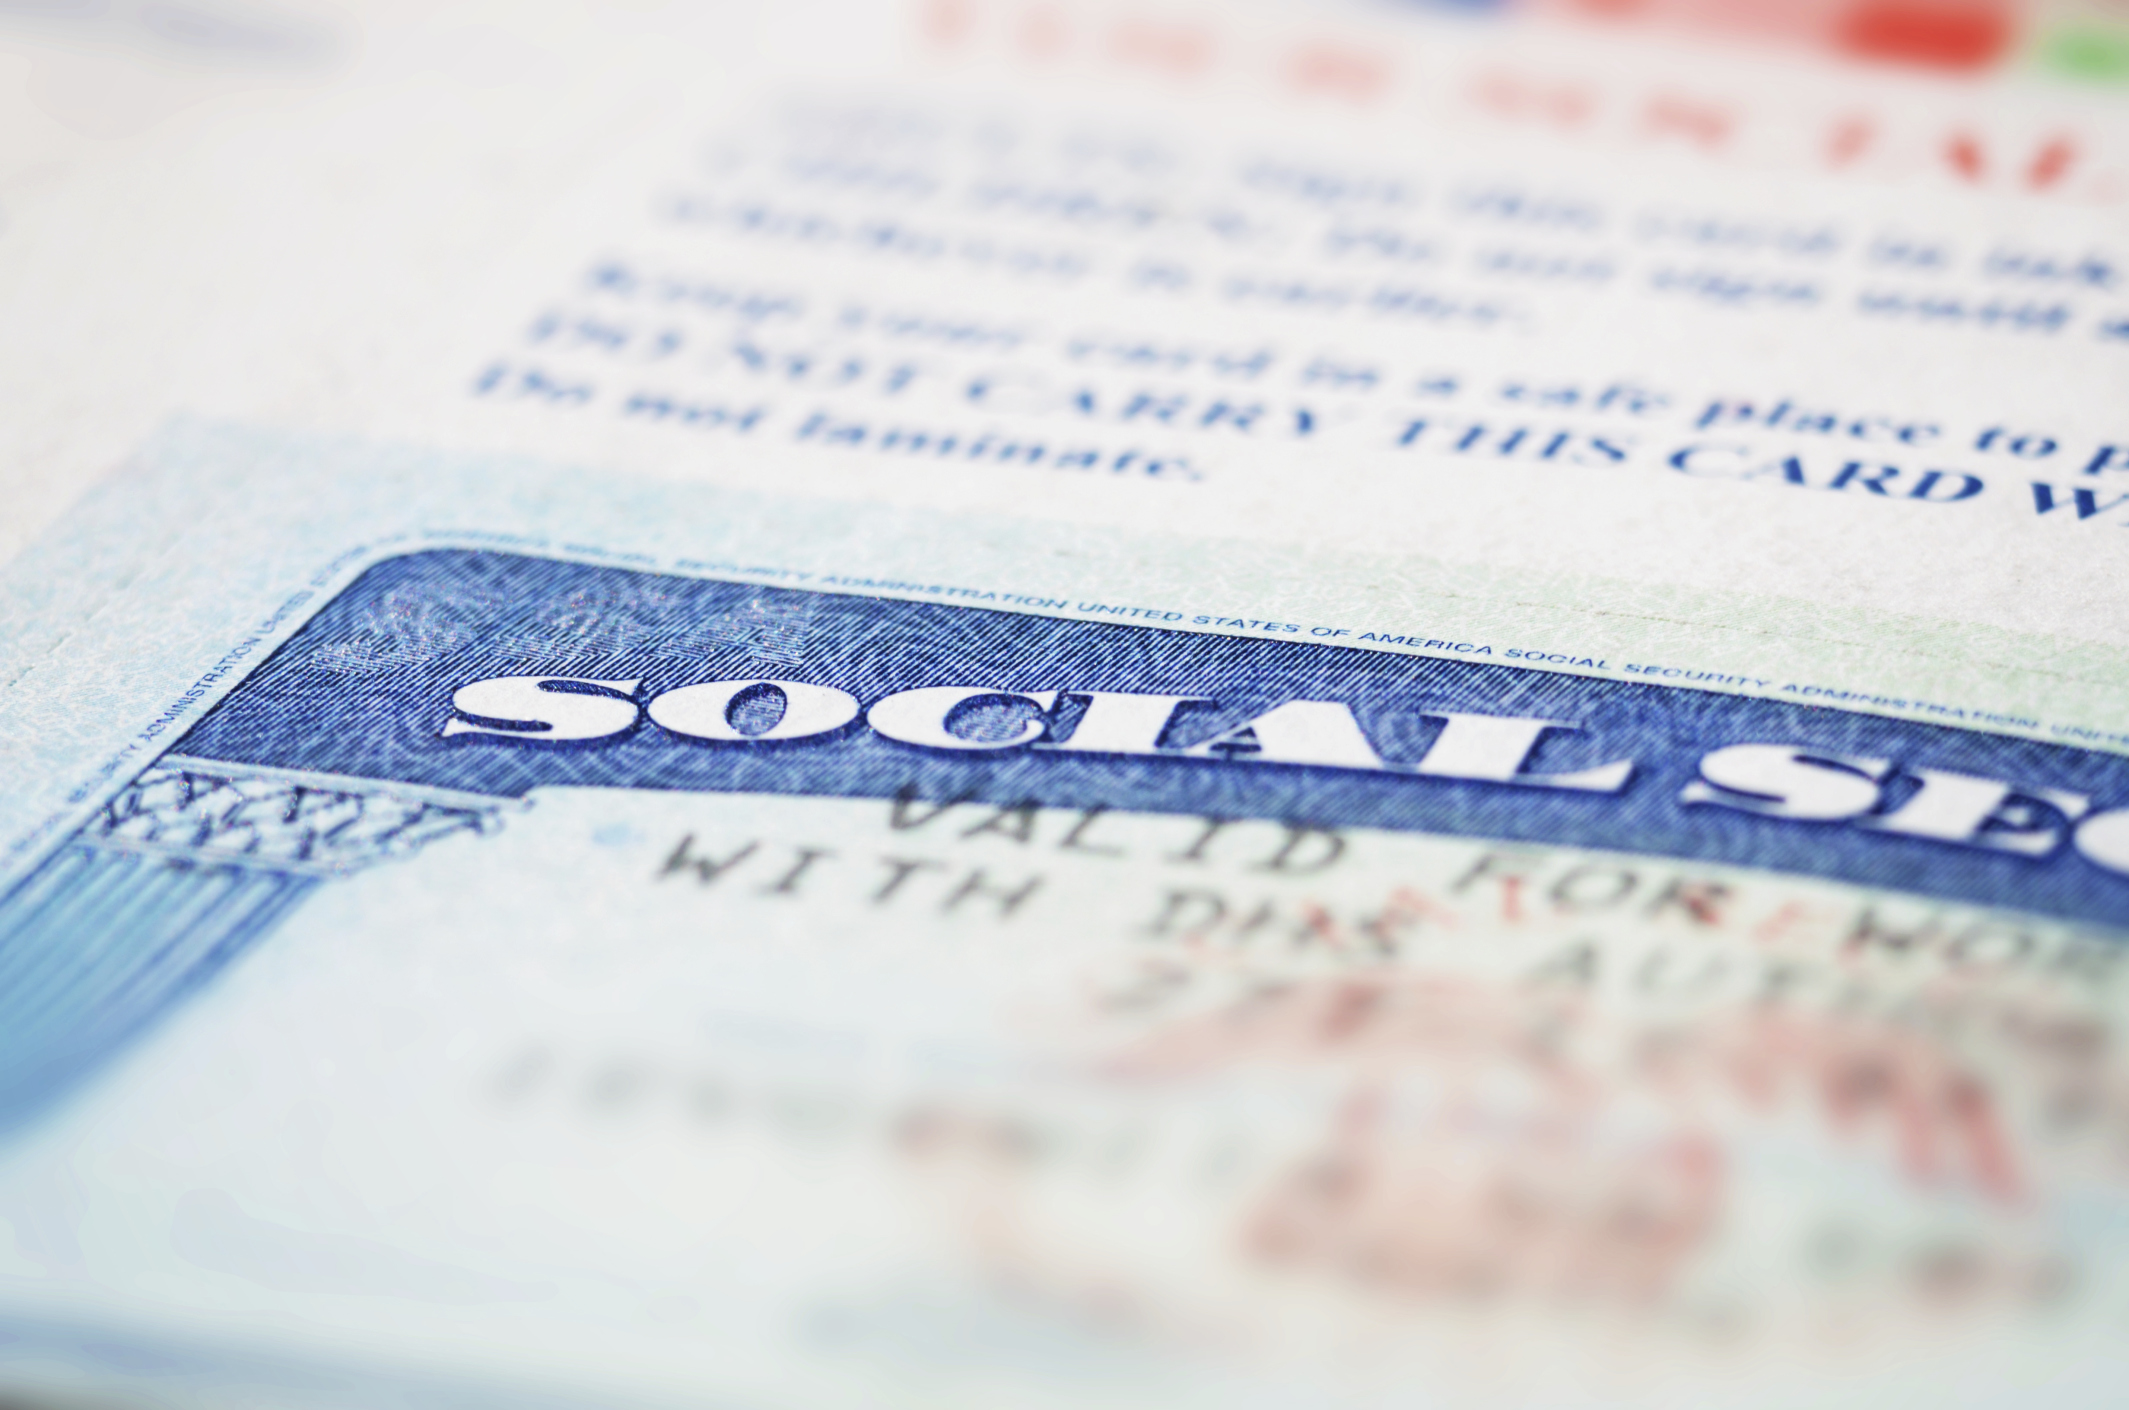 How do i report my childs social security card stolen